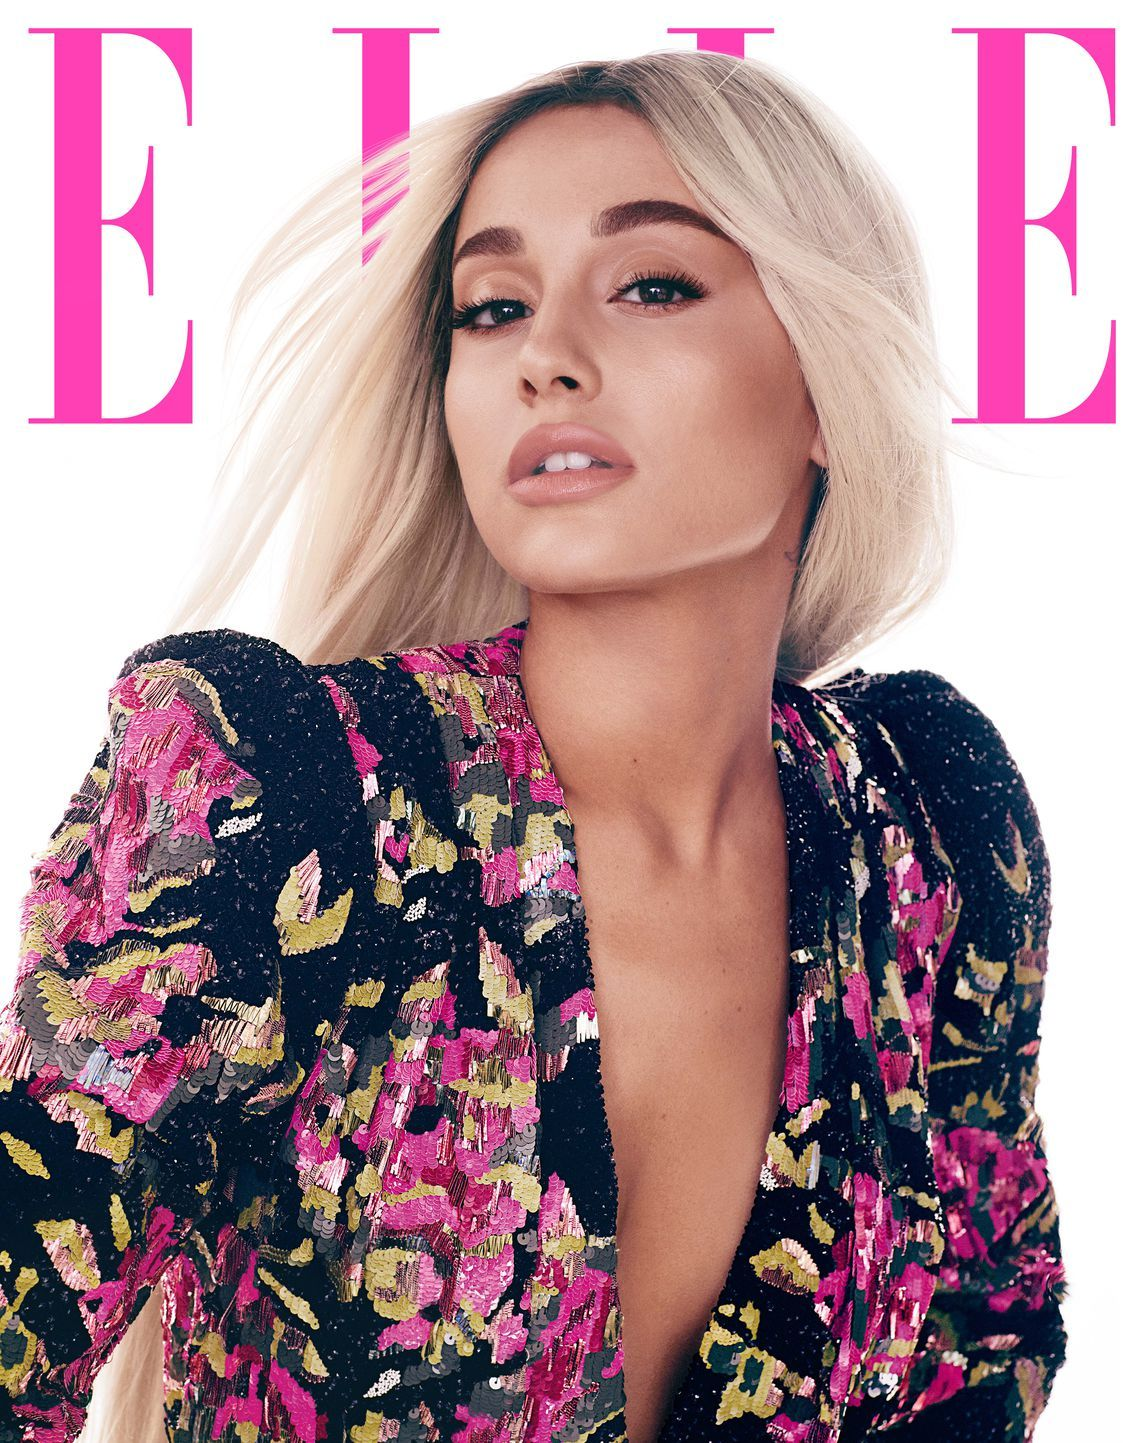 Ariana Grande ELLE Cover Story August 2018 - Ariana Grande Interview